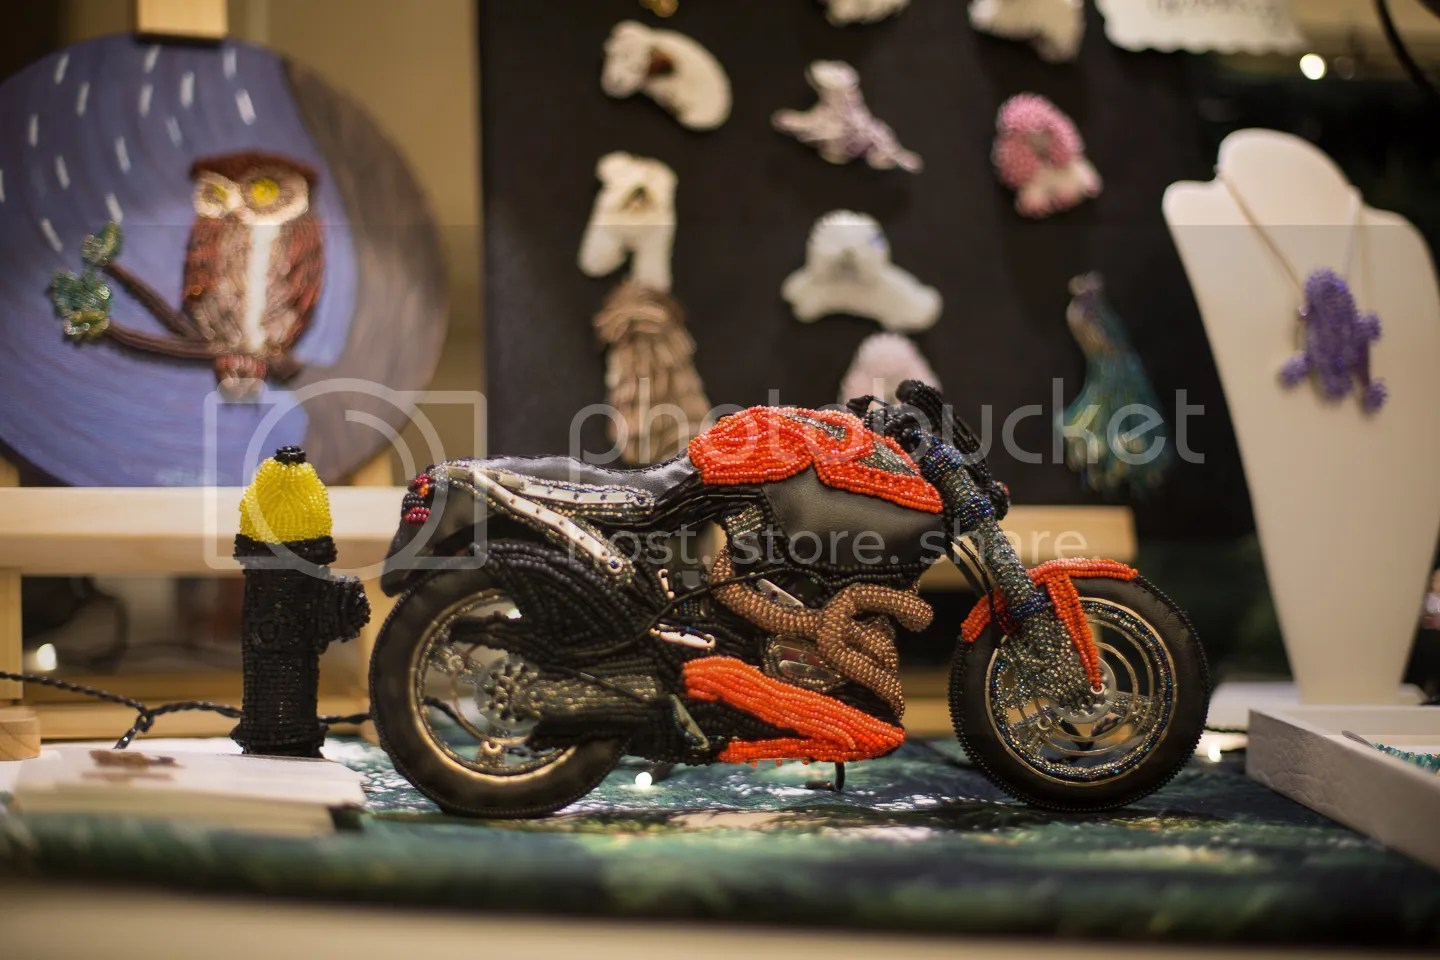 Holiday Pet Shoppes 2012 beaded motorcycle display first craft show booth etsy